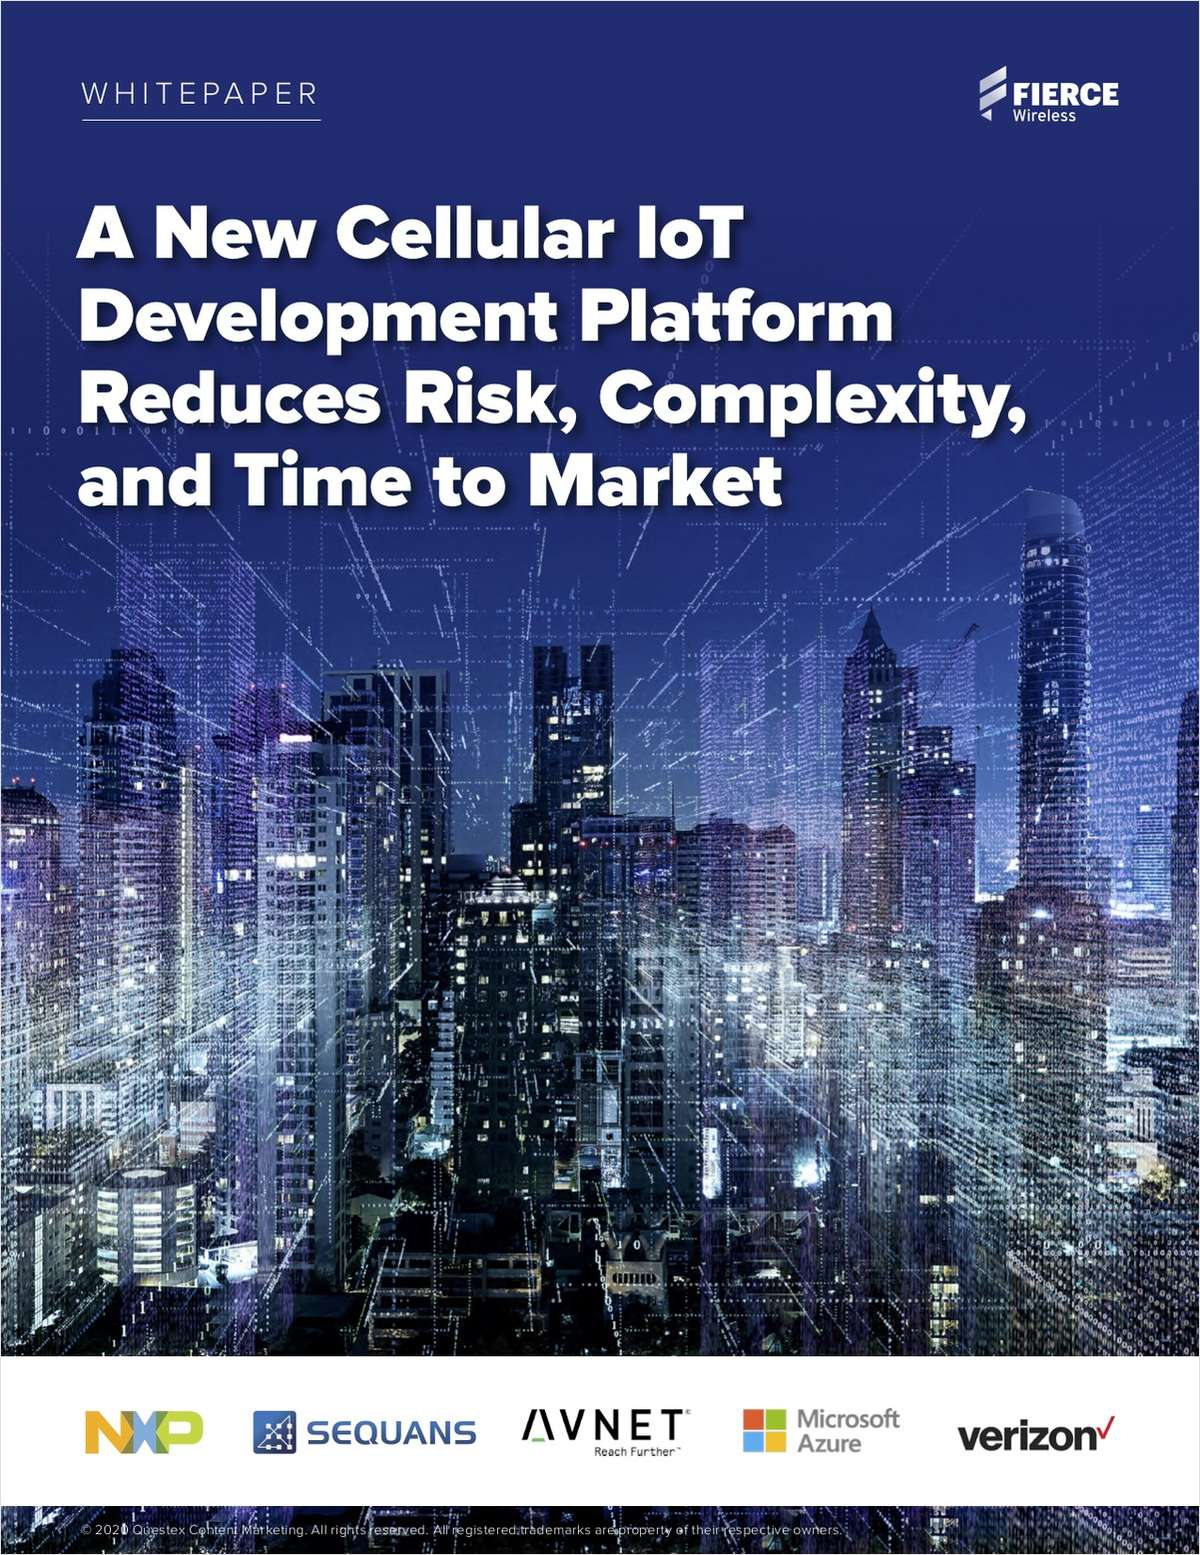 A New Cellular IoT Development Platform Reduces Risk, Complexity, and Time to Market